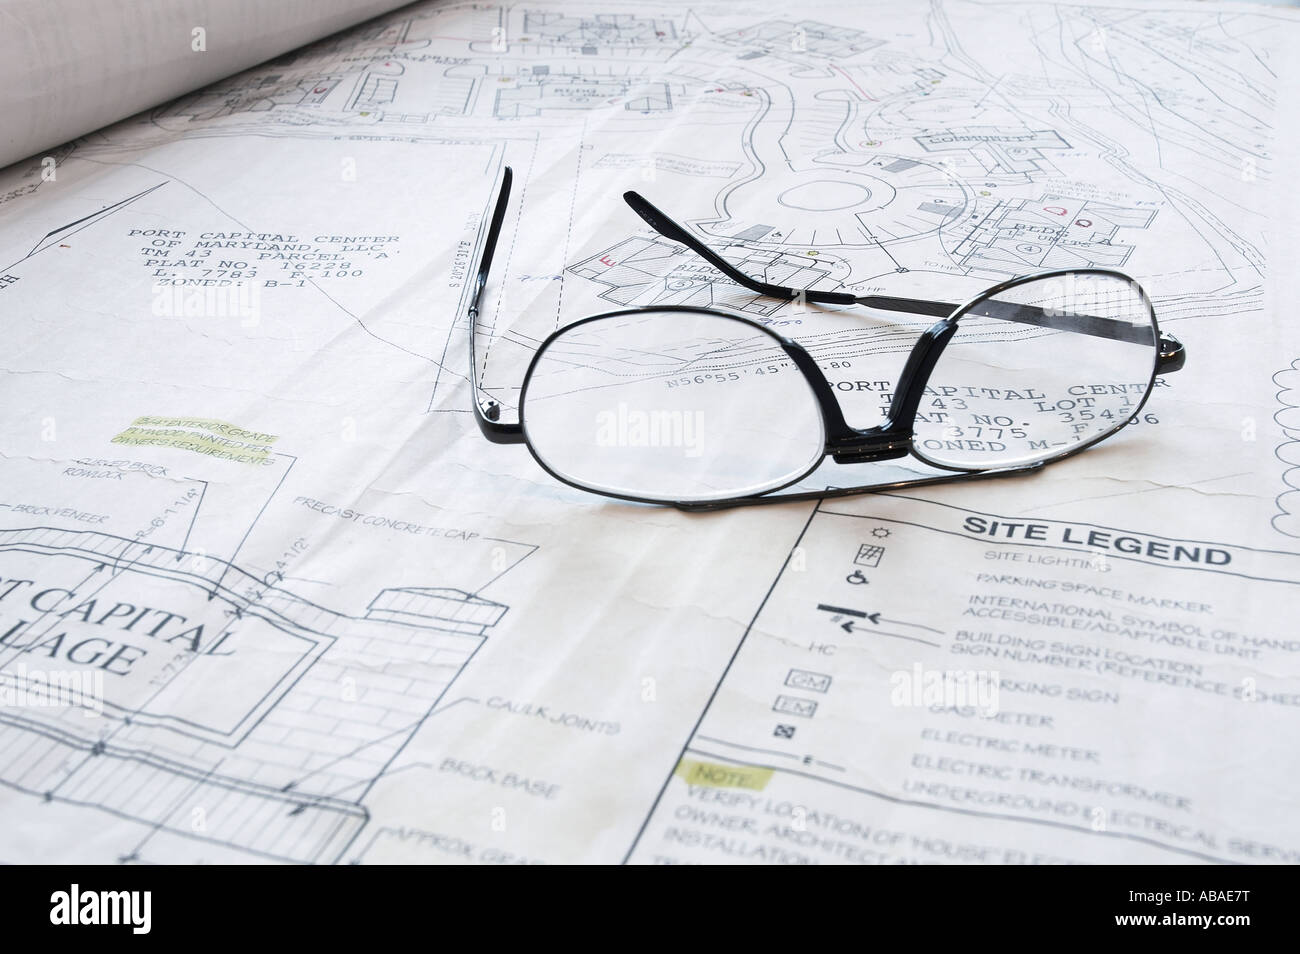 Architectural blueprint drawings of building on table with architectural blueprint drawings of building on table with architects eye glasses studio still life usa malvernweather Image collections